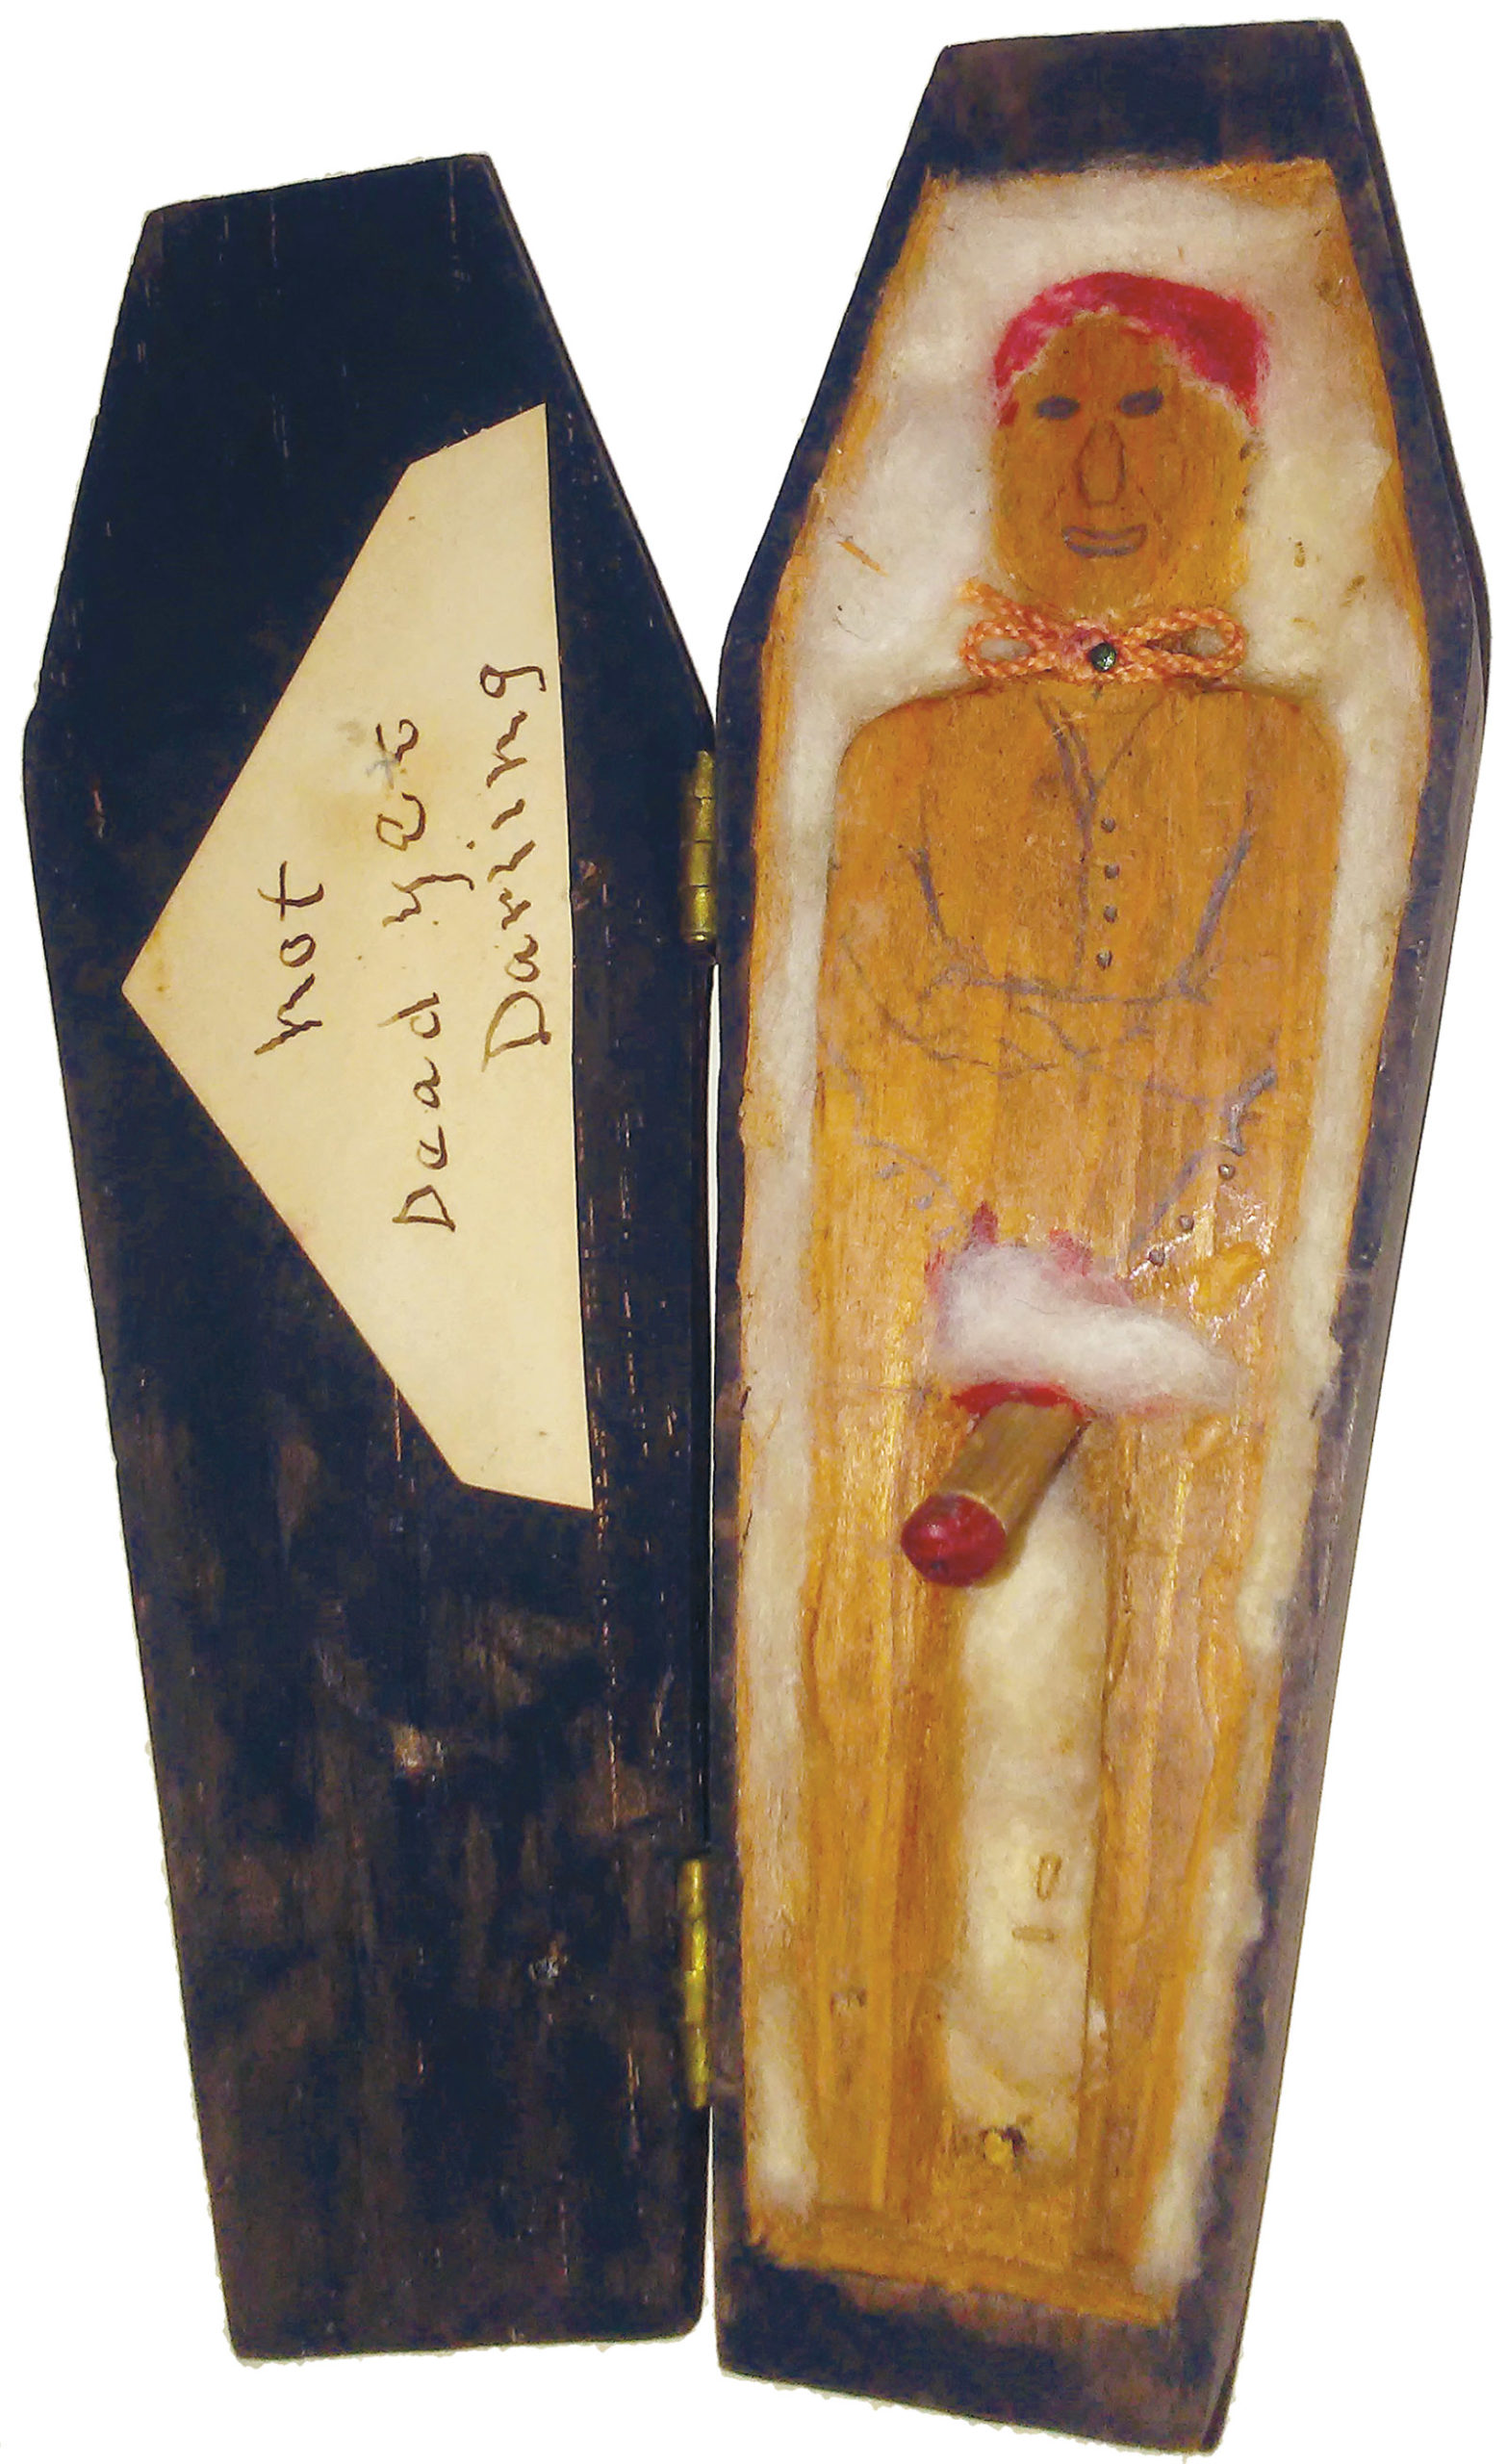 A toy coffin with the inscription Not Dead Yet Darling, circa 1930